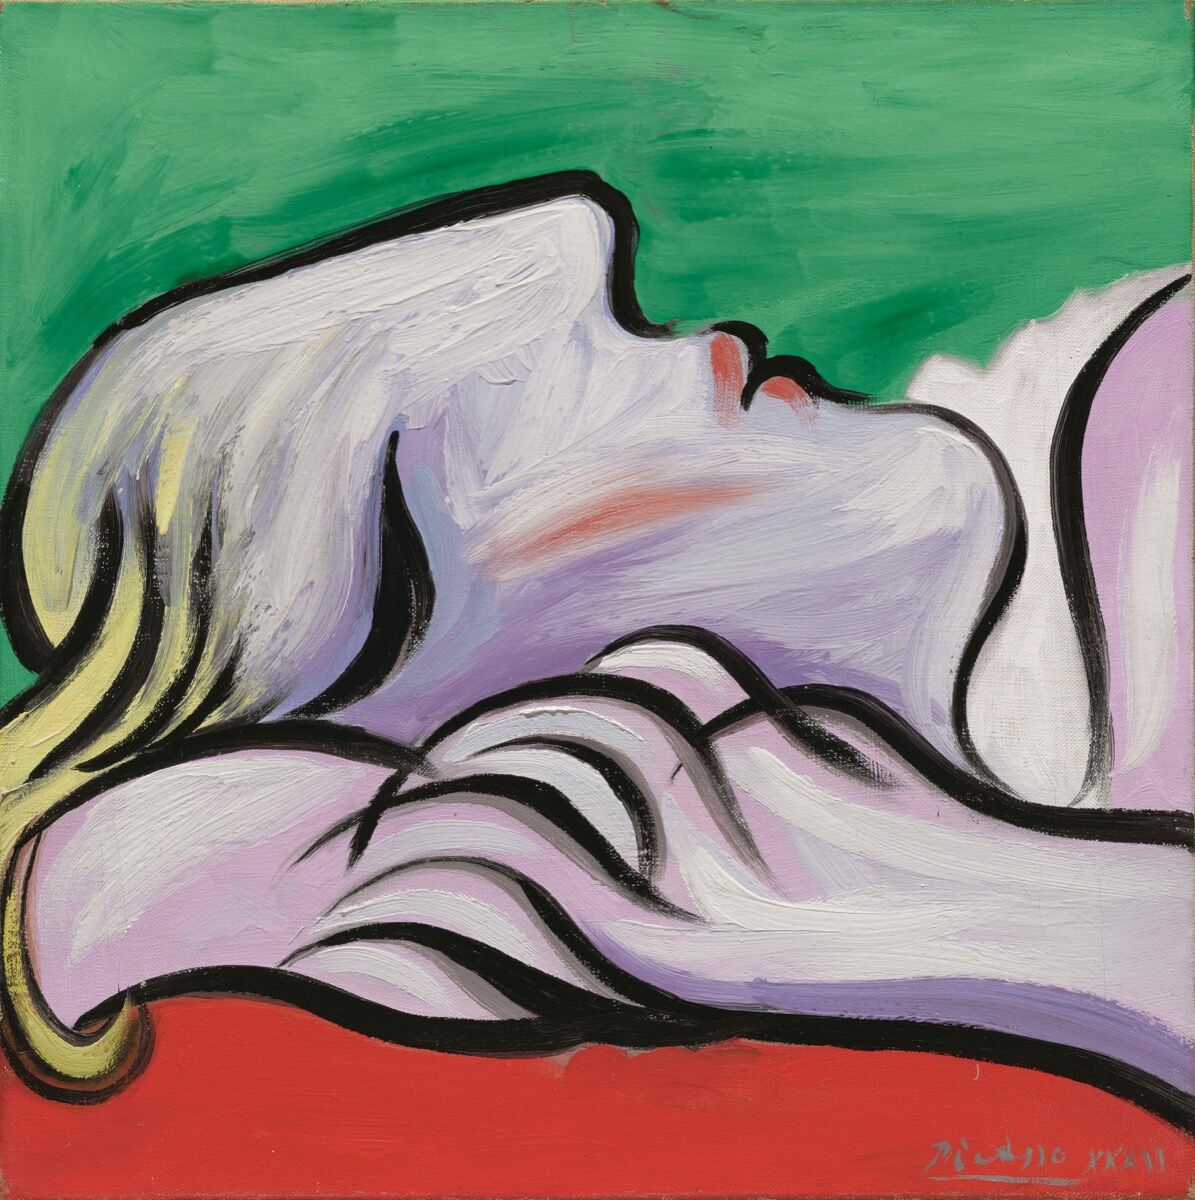 Pablo Picasso, Le repos, 1932. Courtesy of Sotheby's.